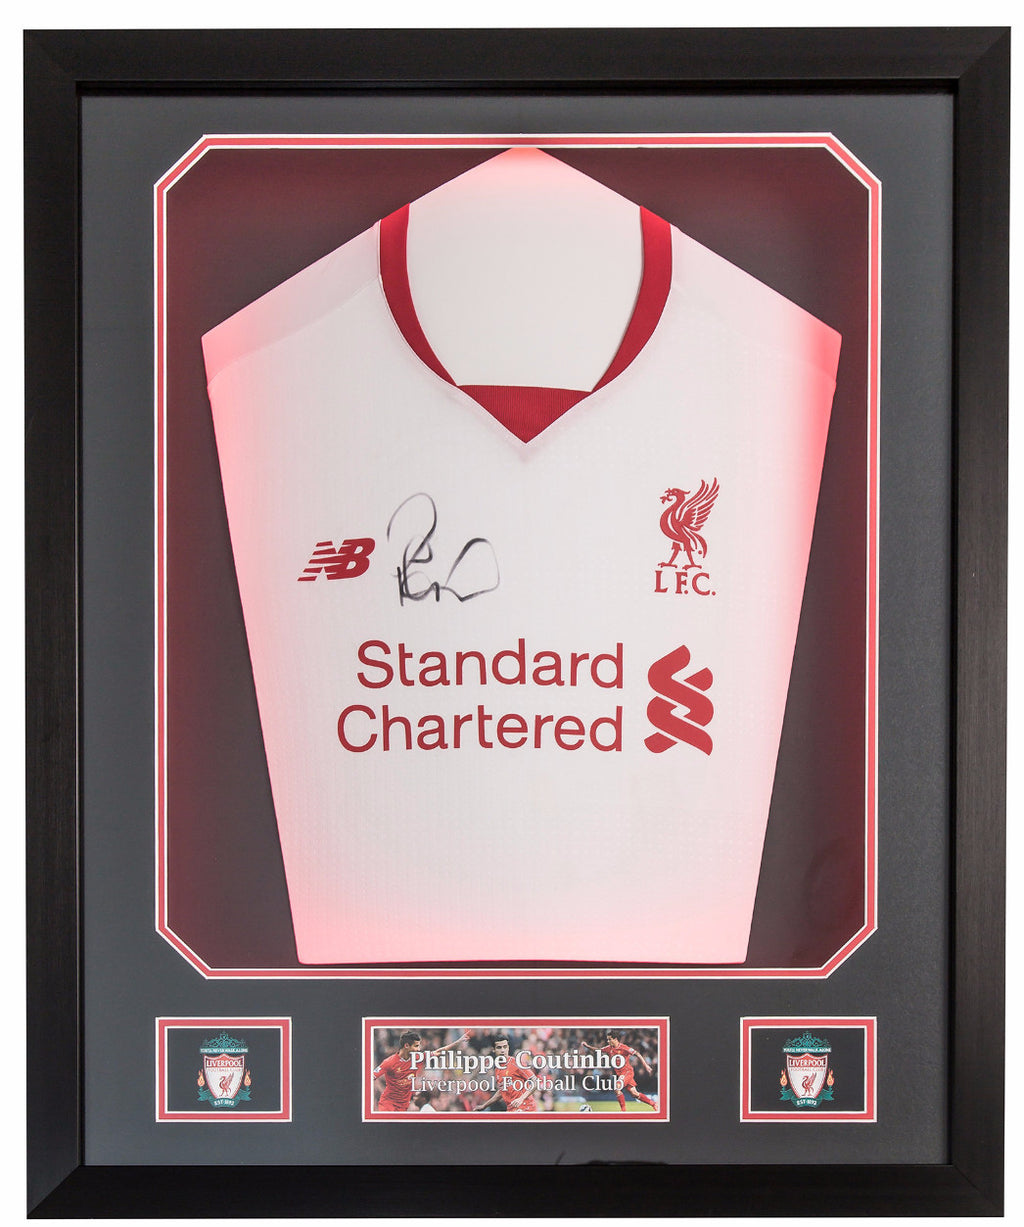 Philippe Coutinho Signed Liverpool 2015/16 Shirt - Premium Framed